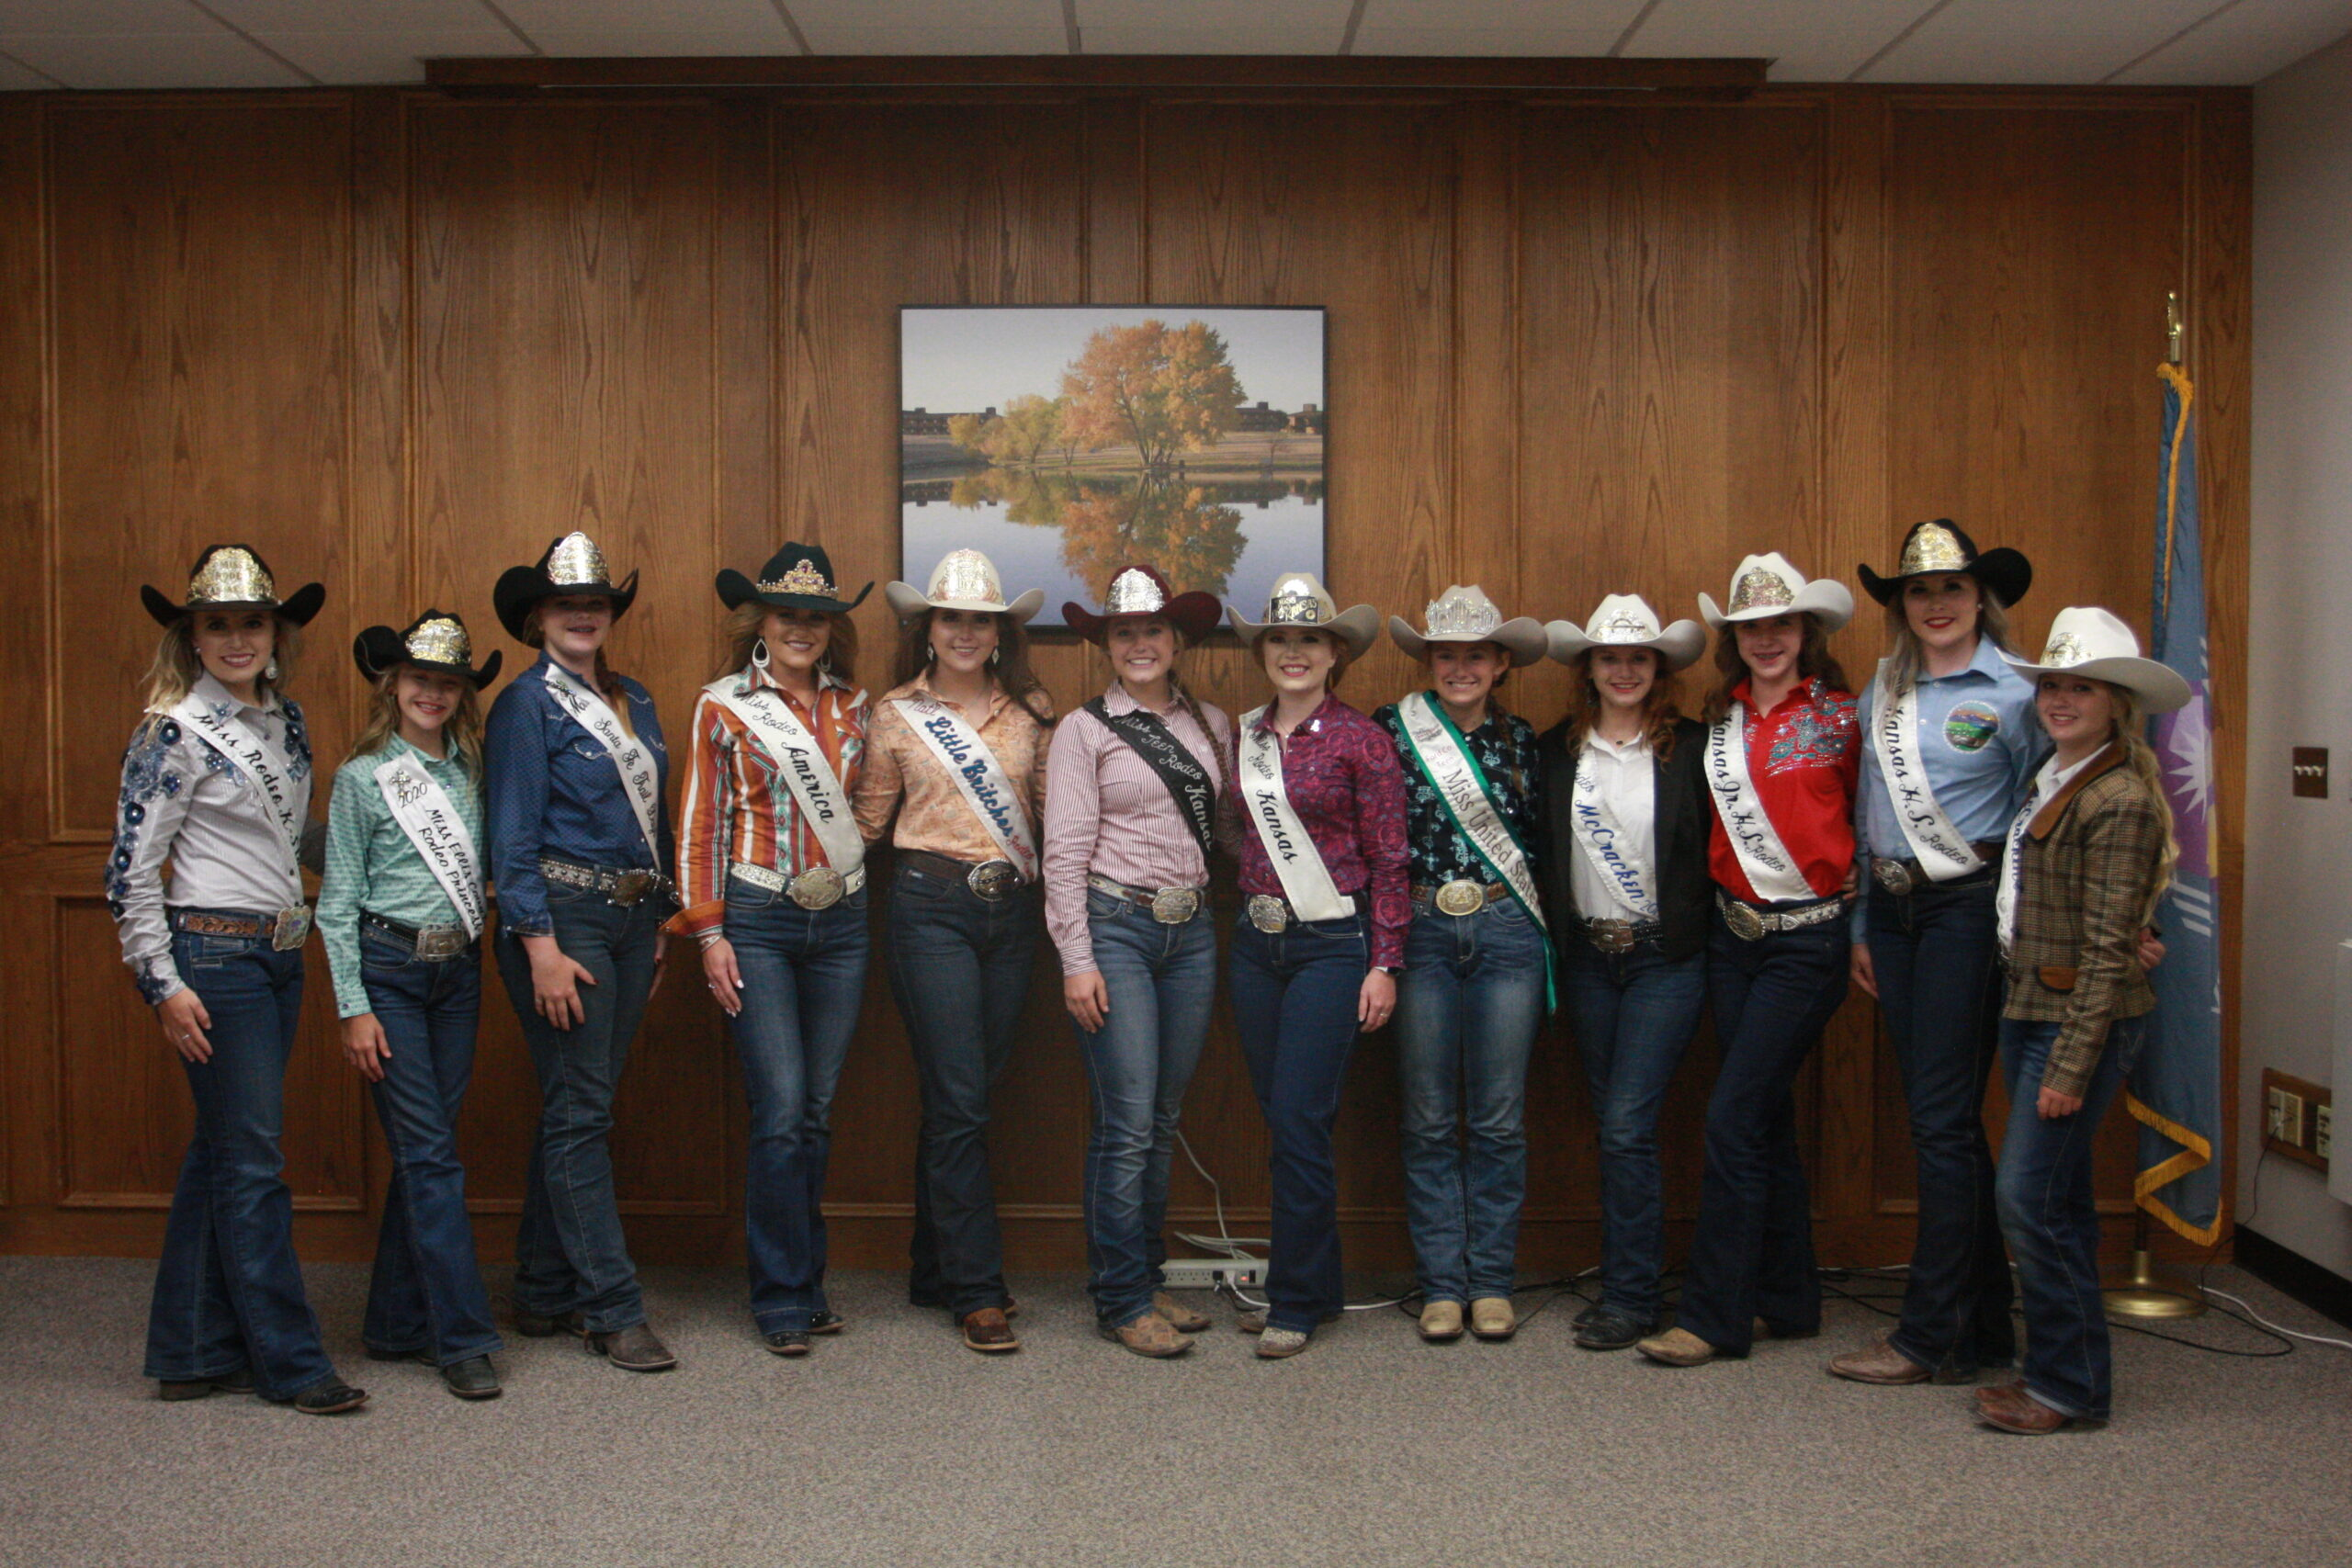 Participants in the Miss Rodeo Kansas pose for a group photo